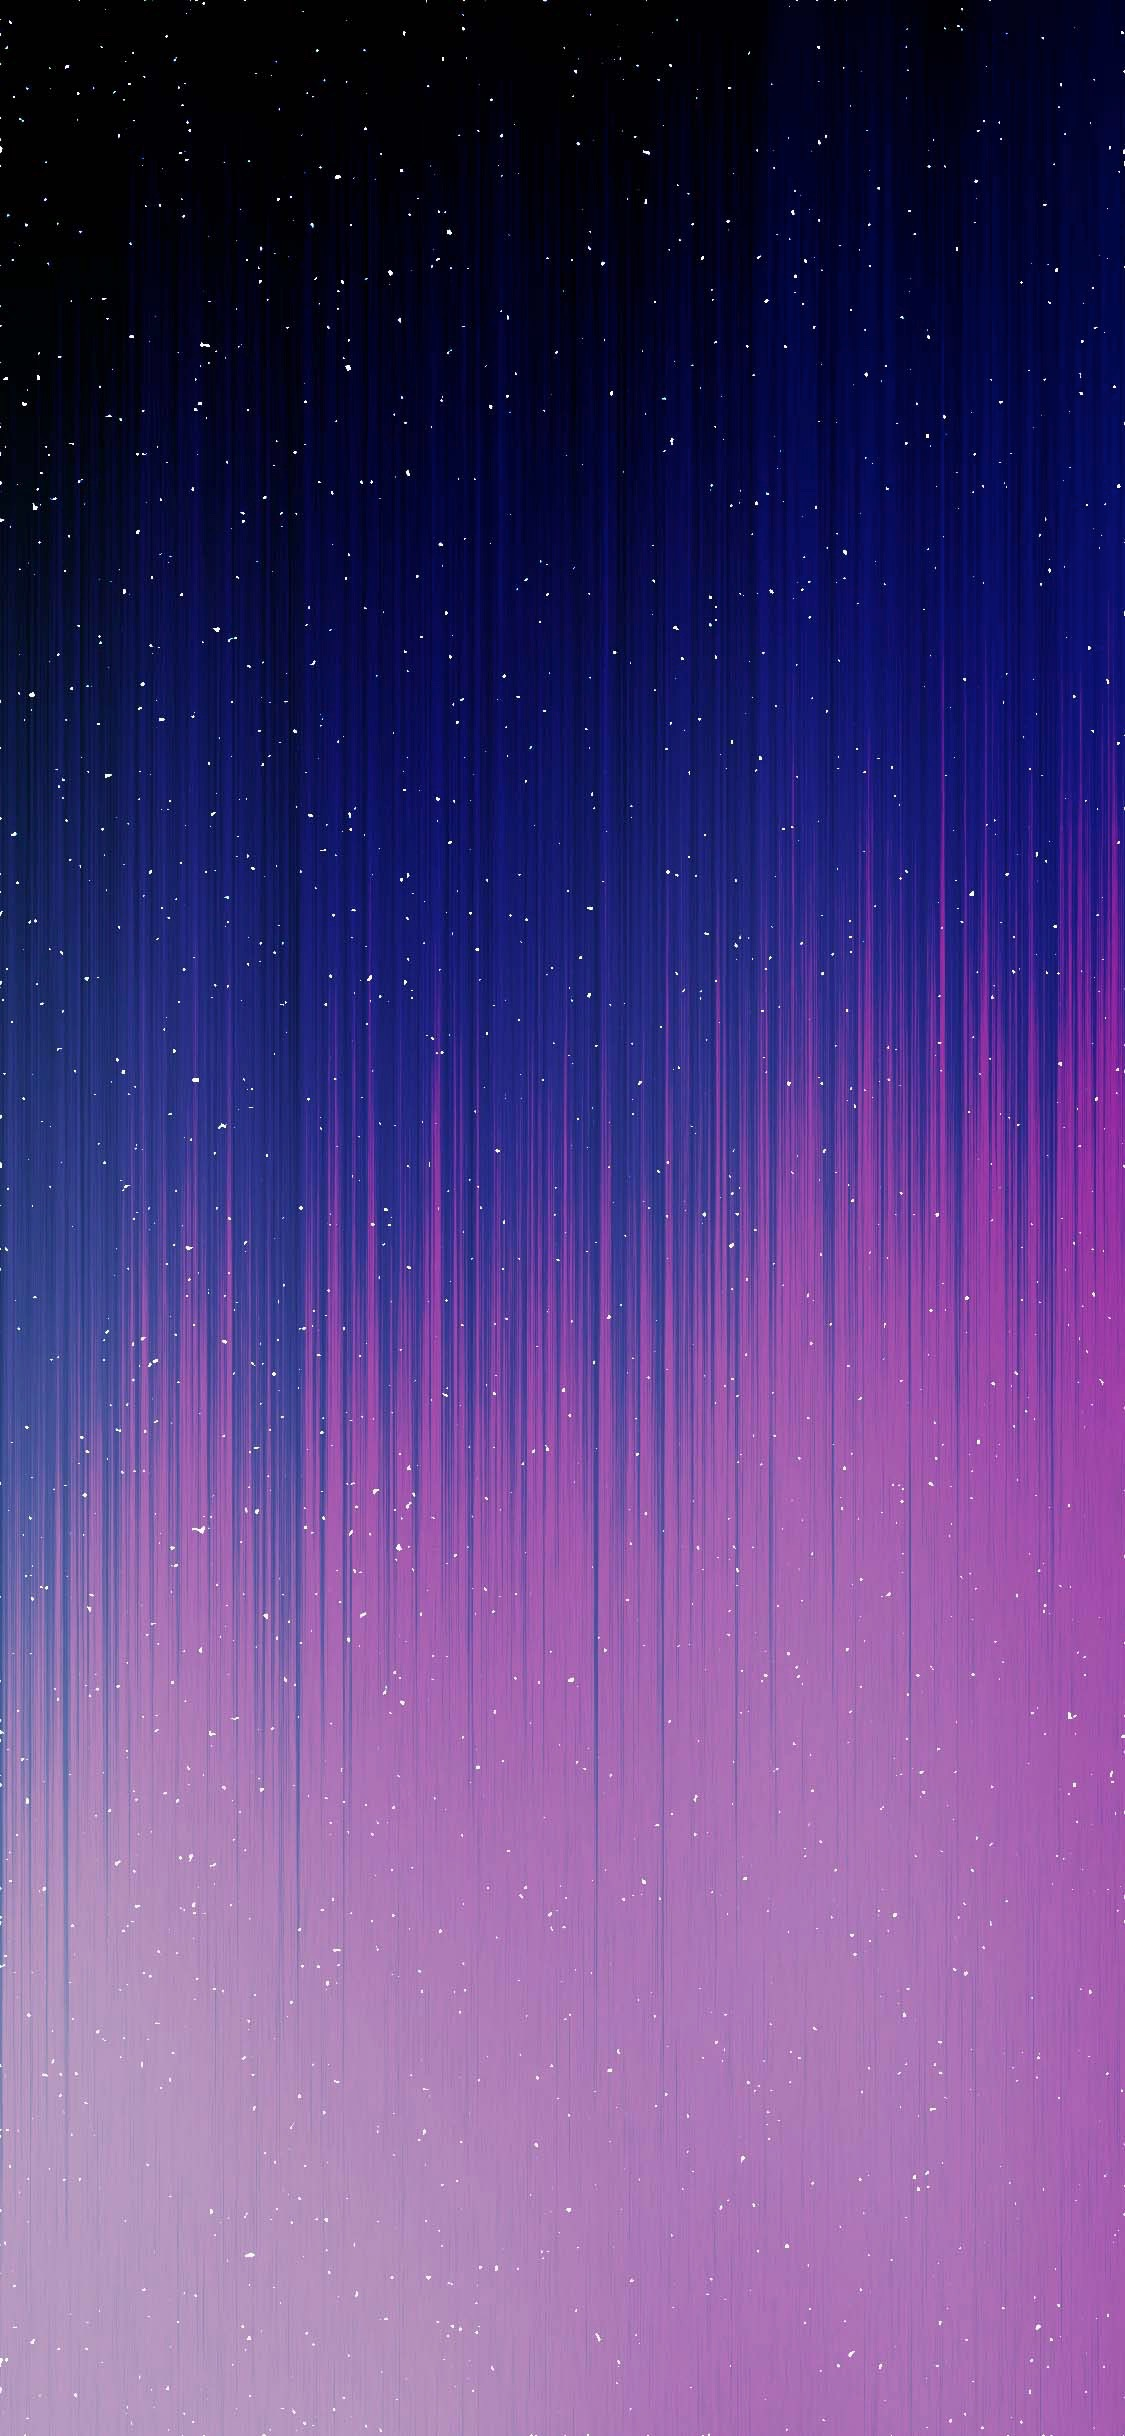 Celestial Beam iphone wallpaper by fresk0_